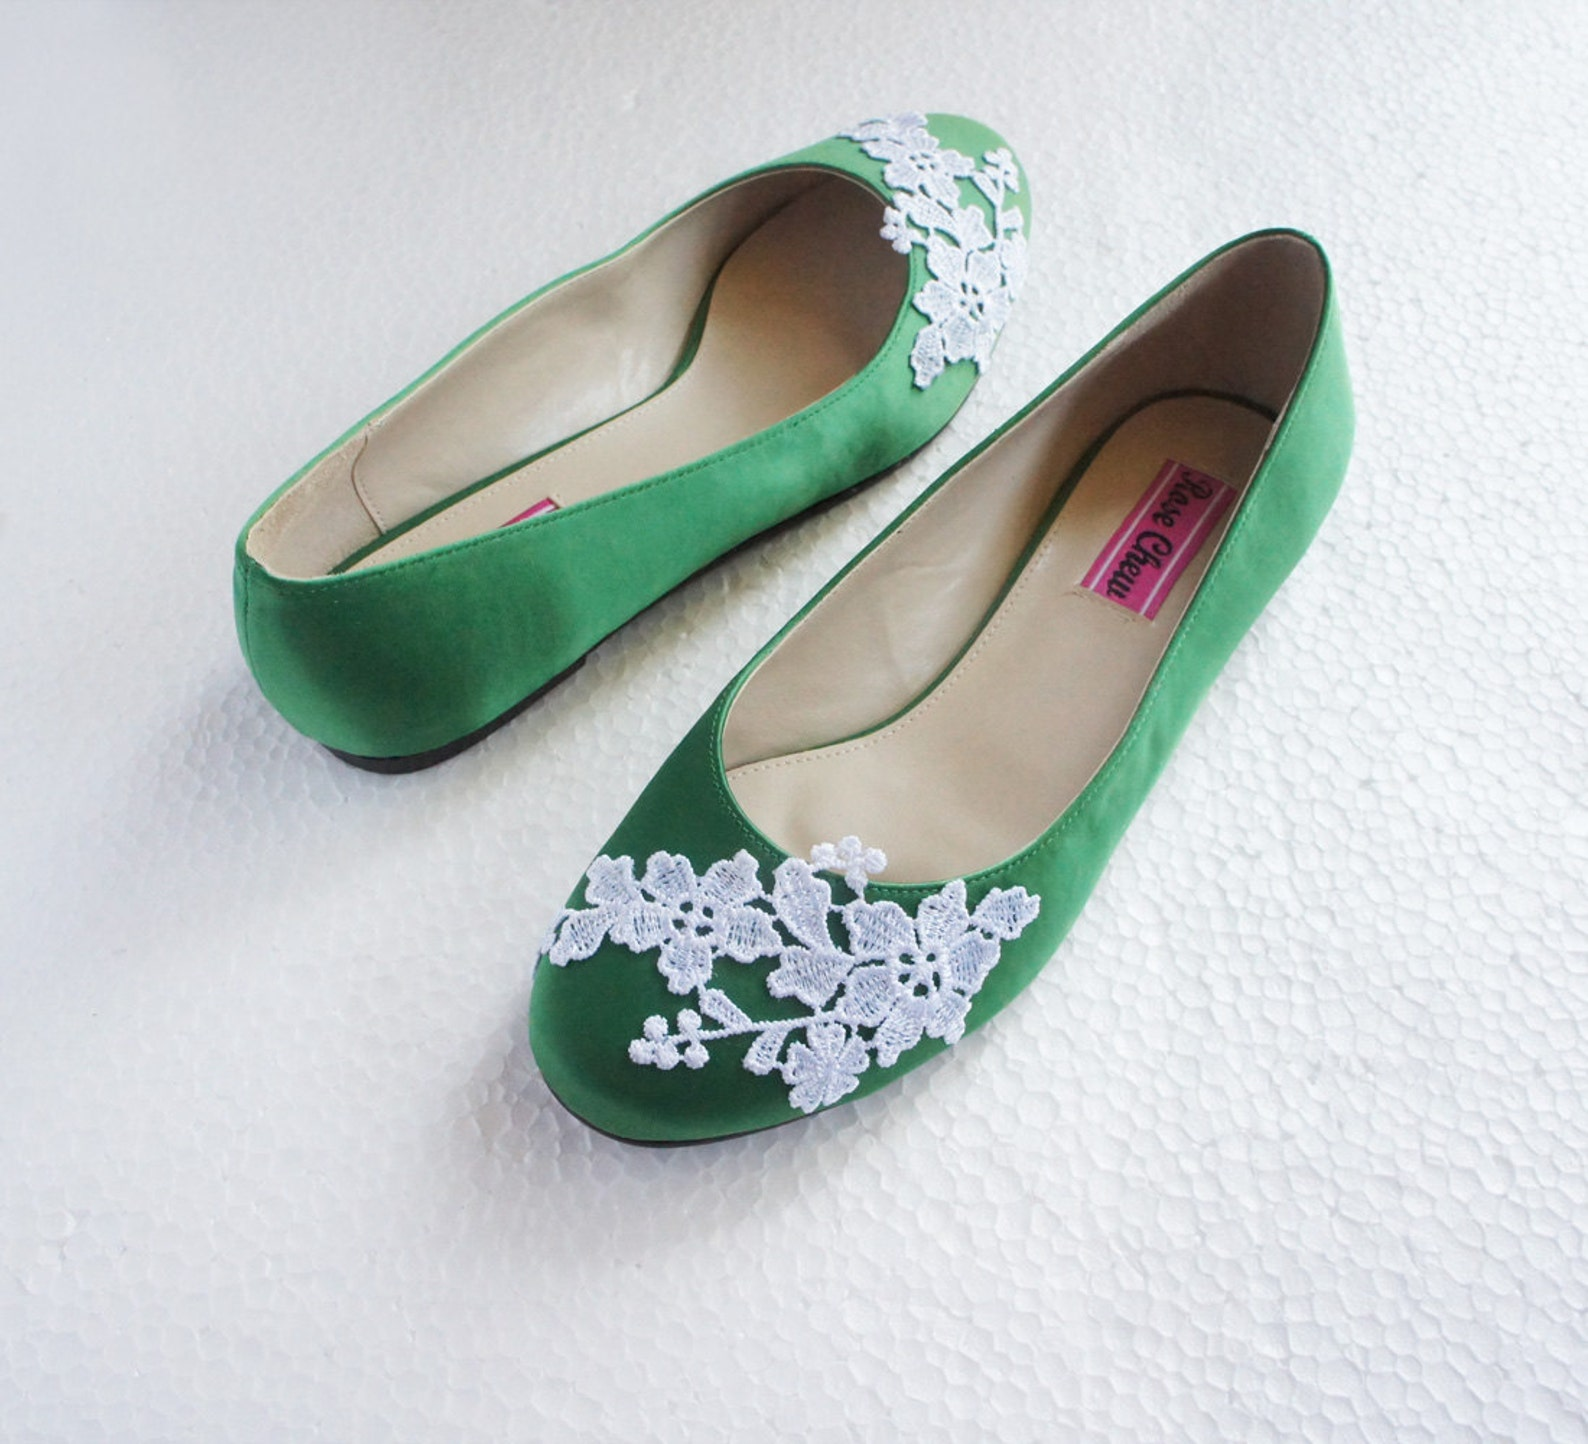 white lace green satin wedding shoes floral embroidered bridal ballet flats summer rustic wedding fashion flower bridesmaid shoe